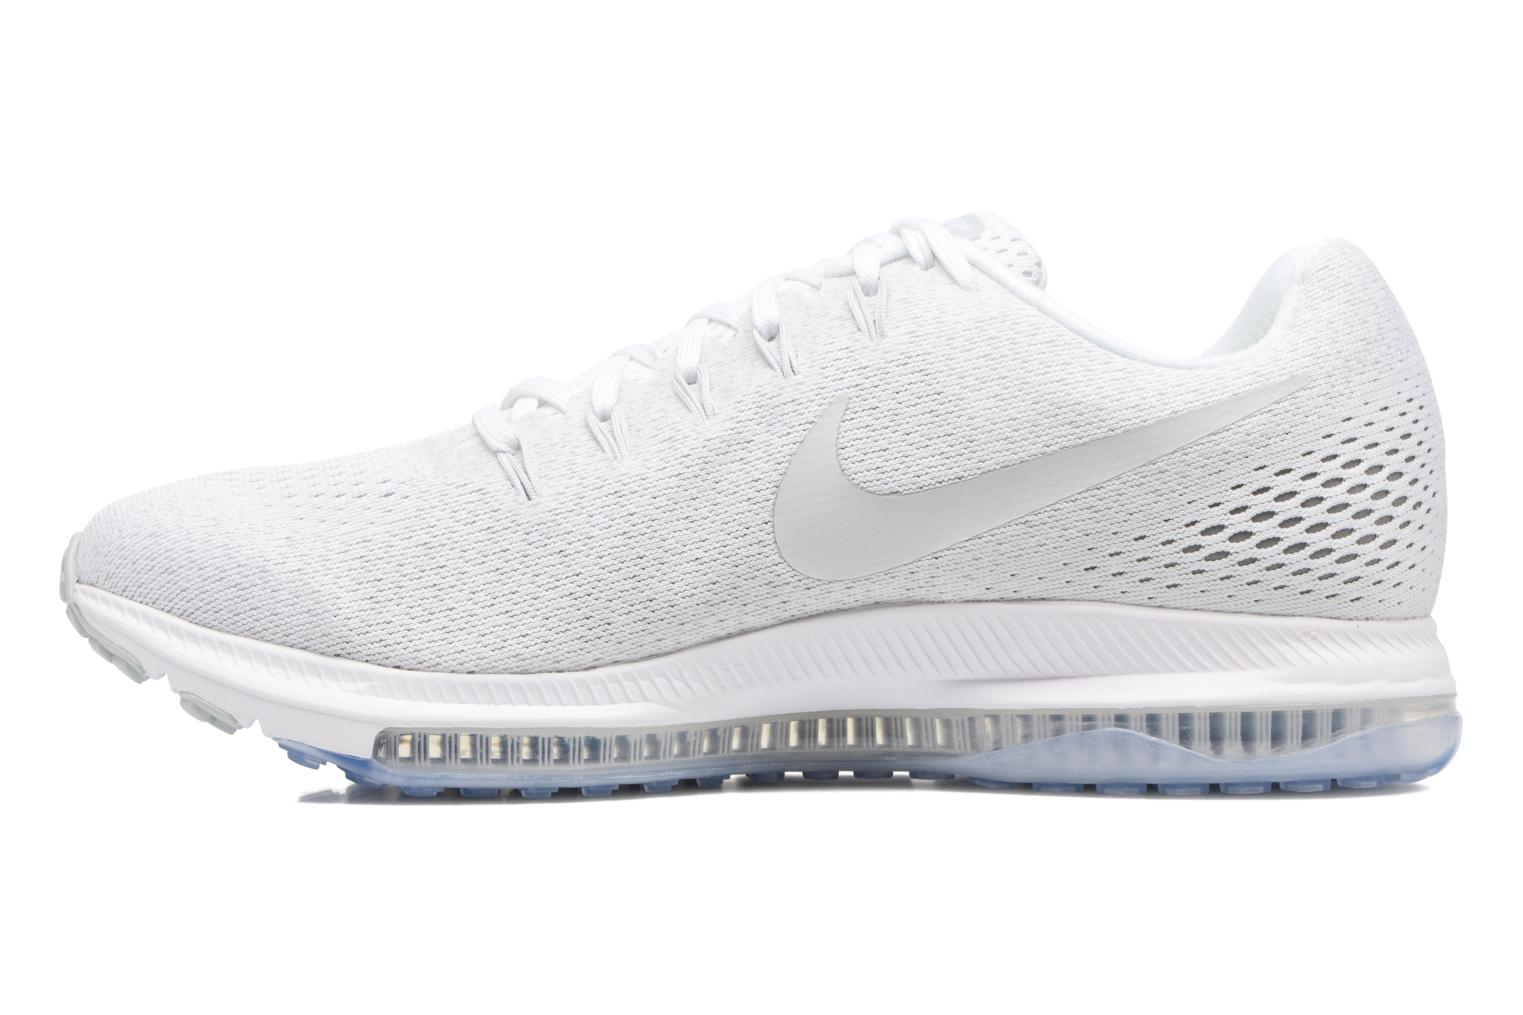 Chaussures de sport Nike Nike Zoom All Out Low Blanc vue face